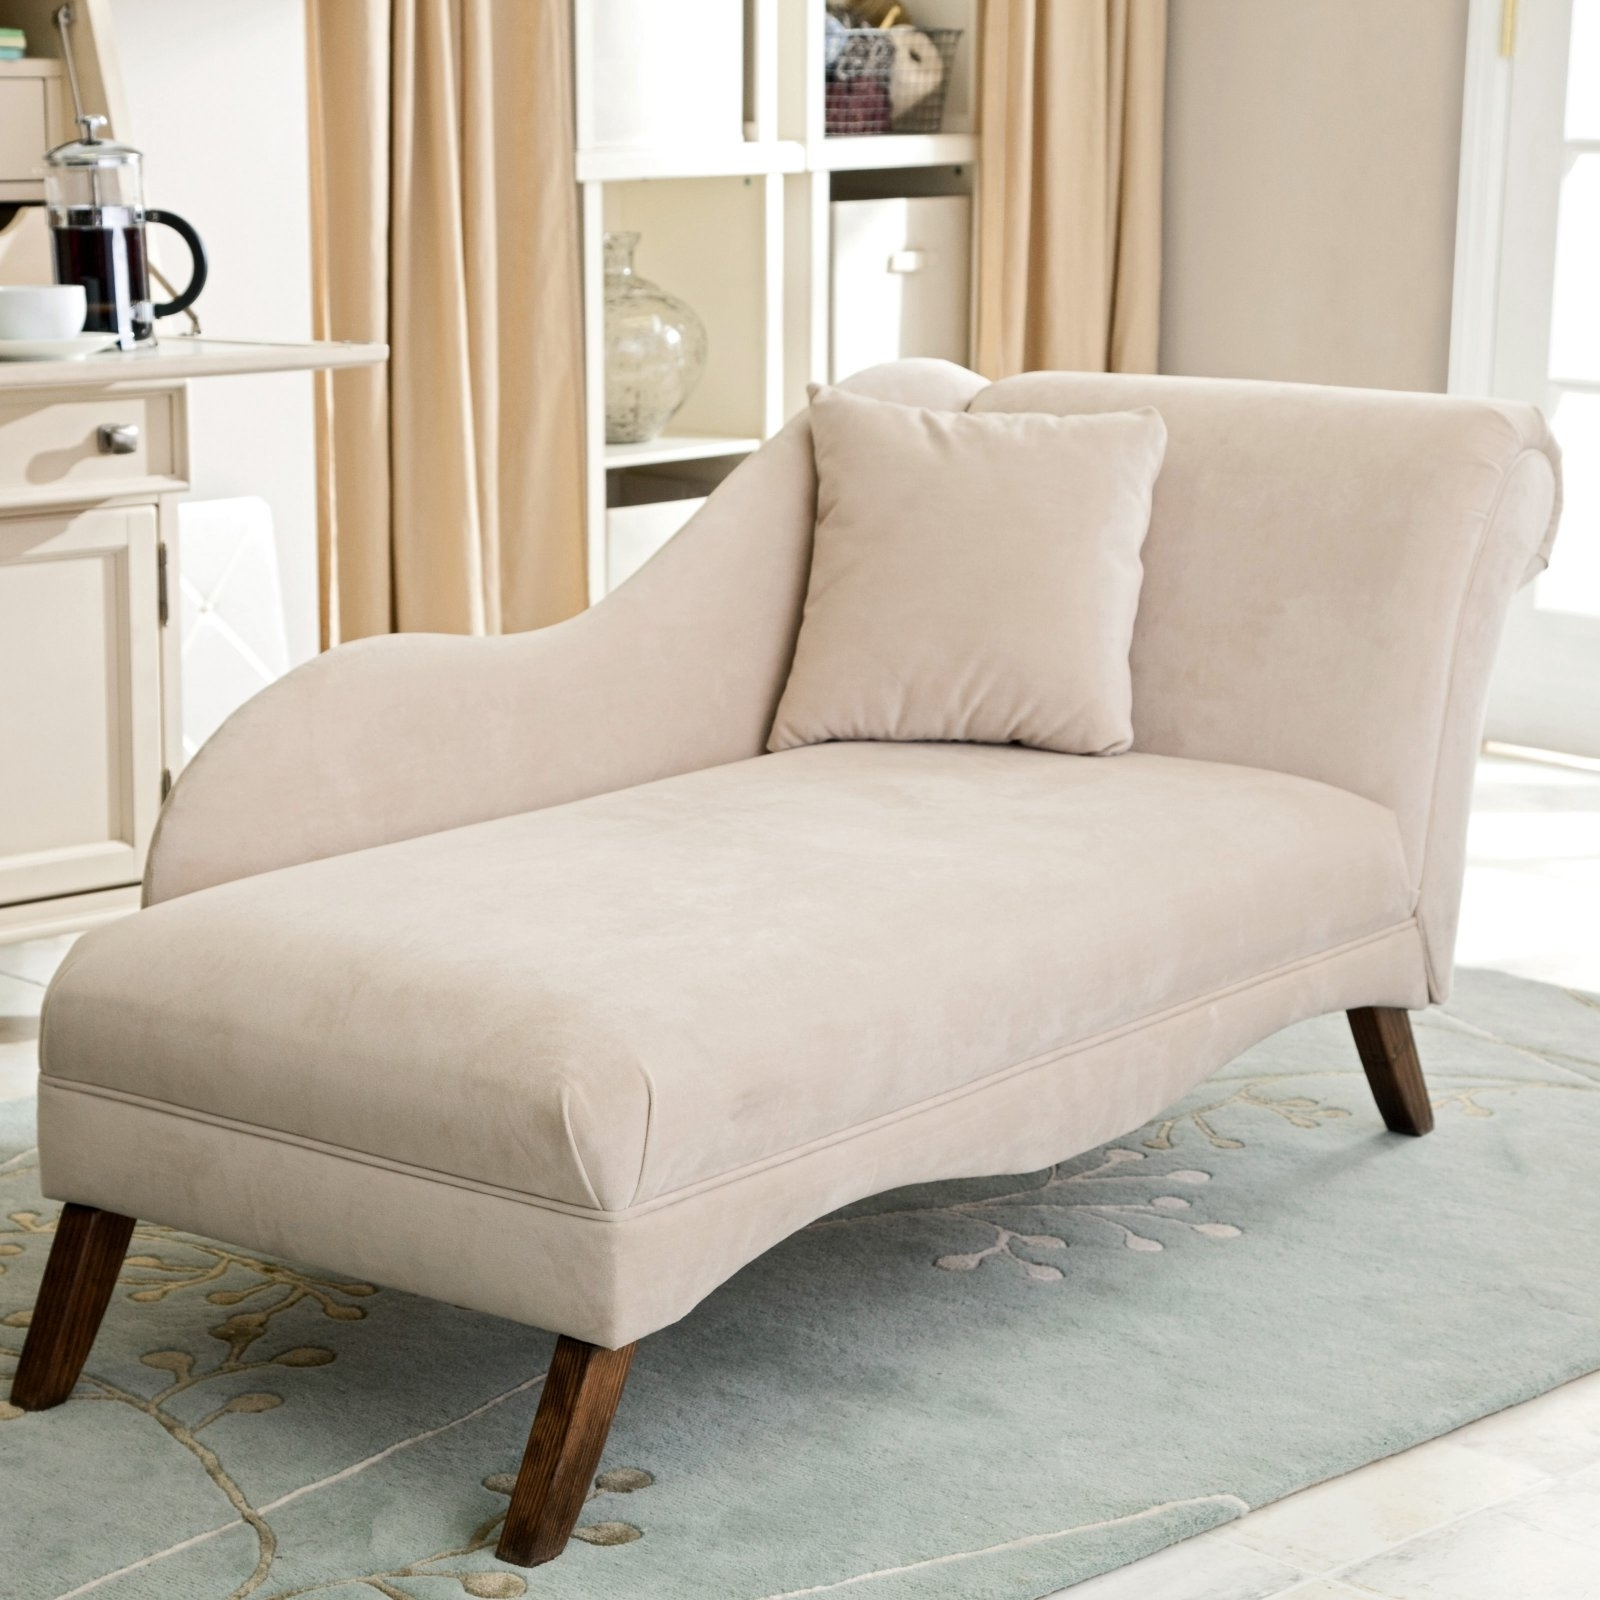 White Lounge Chair Indoor • Lounge Chairs Ideas Inside 2017 White Indoor Chaise Lounges (View 15 of 15)